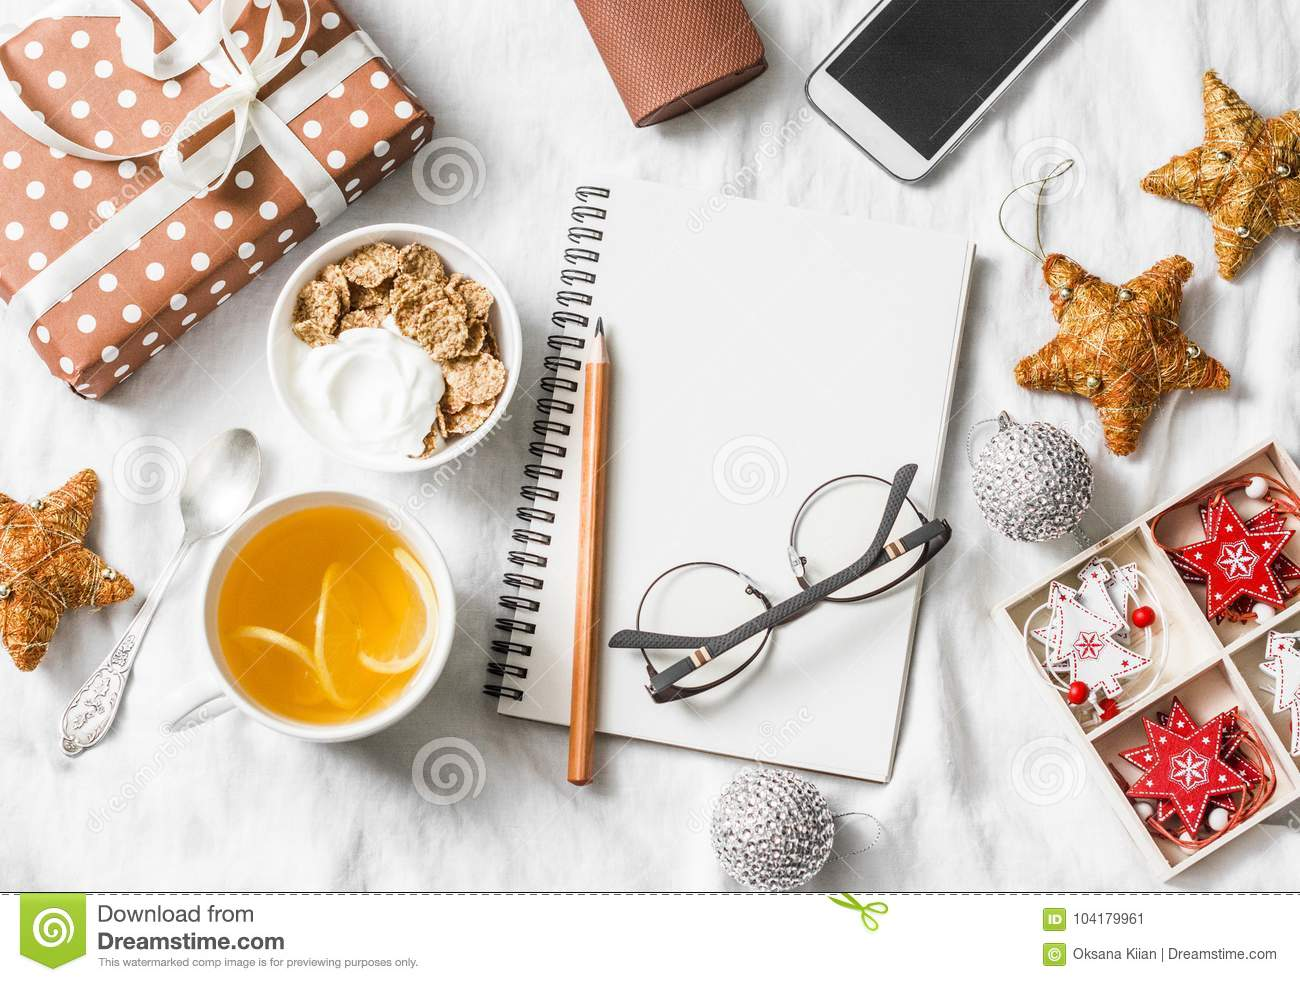 Morning breakfast christmas inspiration planning concept. Yoghurt with whole grain cereal and tea with lemon, christmas decoration